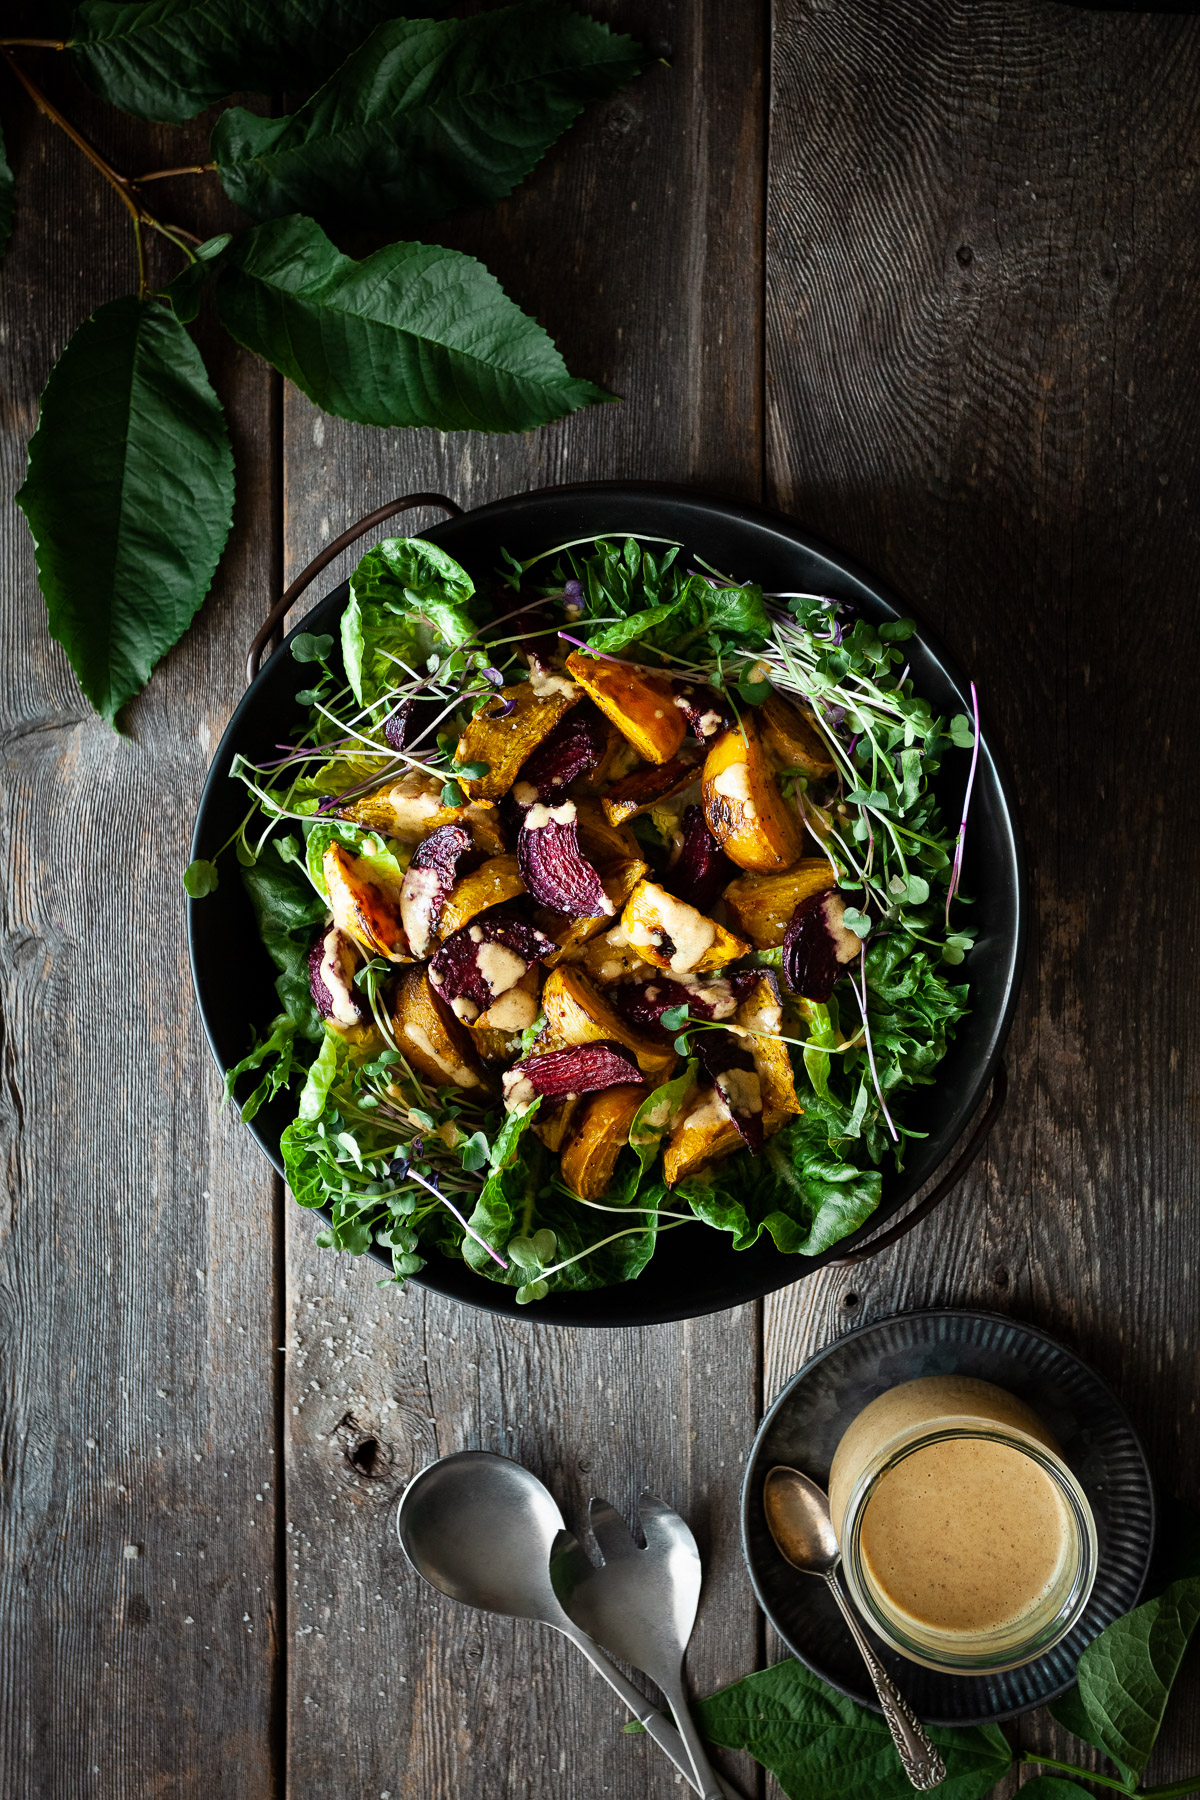 overhead view of roasted beet salad on a wood surface with a bowl of dressing, cutlery.